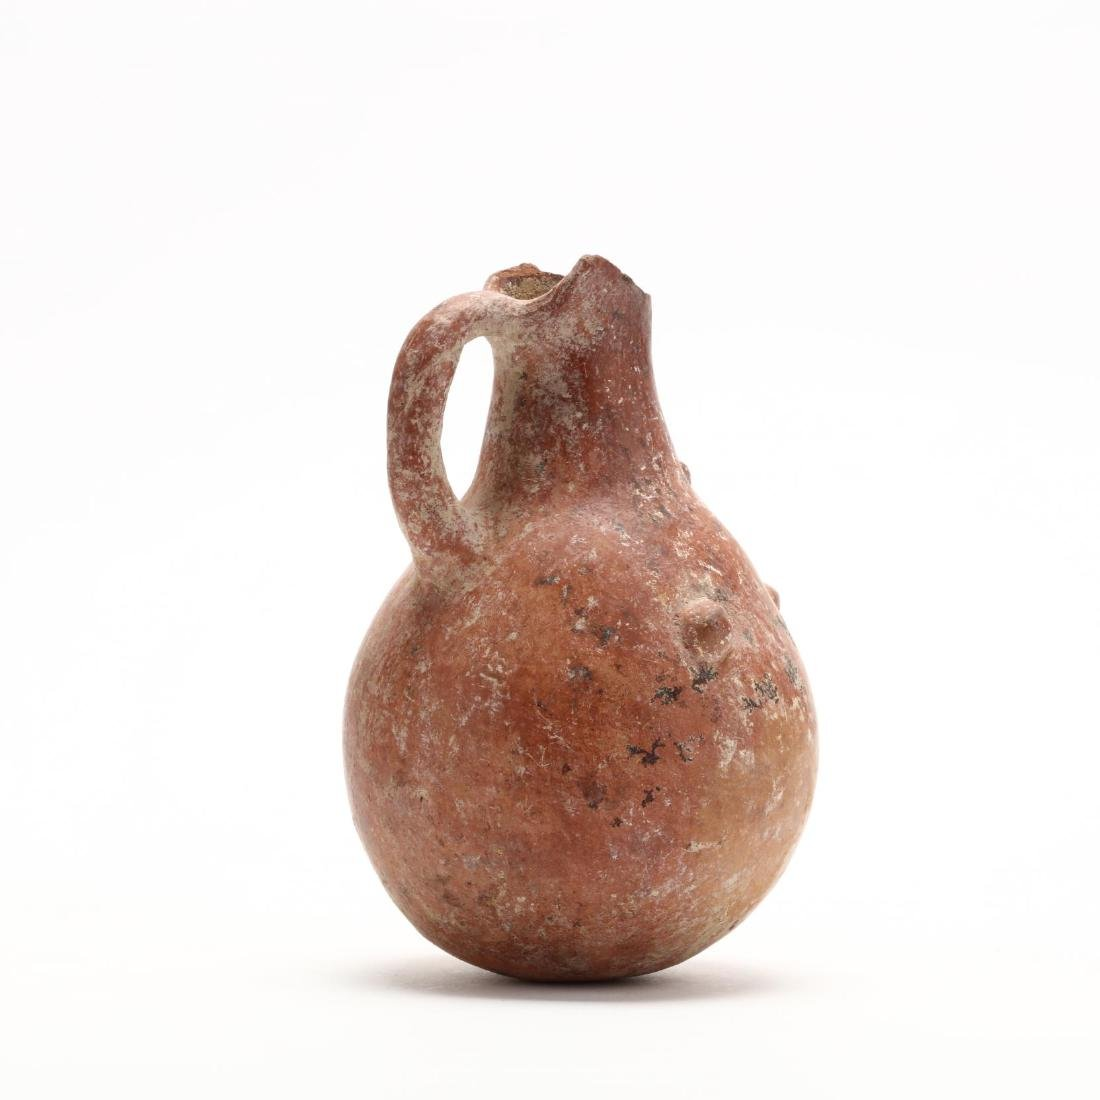 Cypriot Early Bronze Age Polished Red Ware Jug - 4